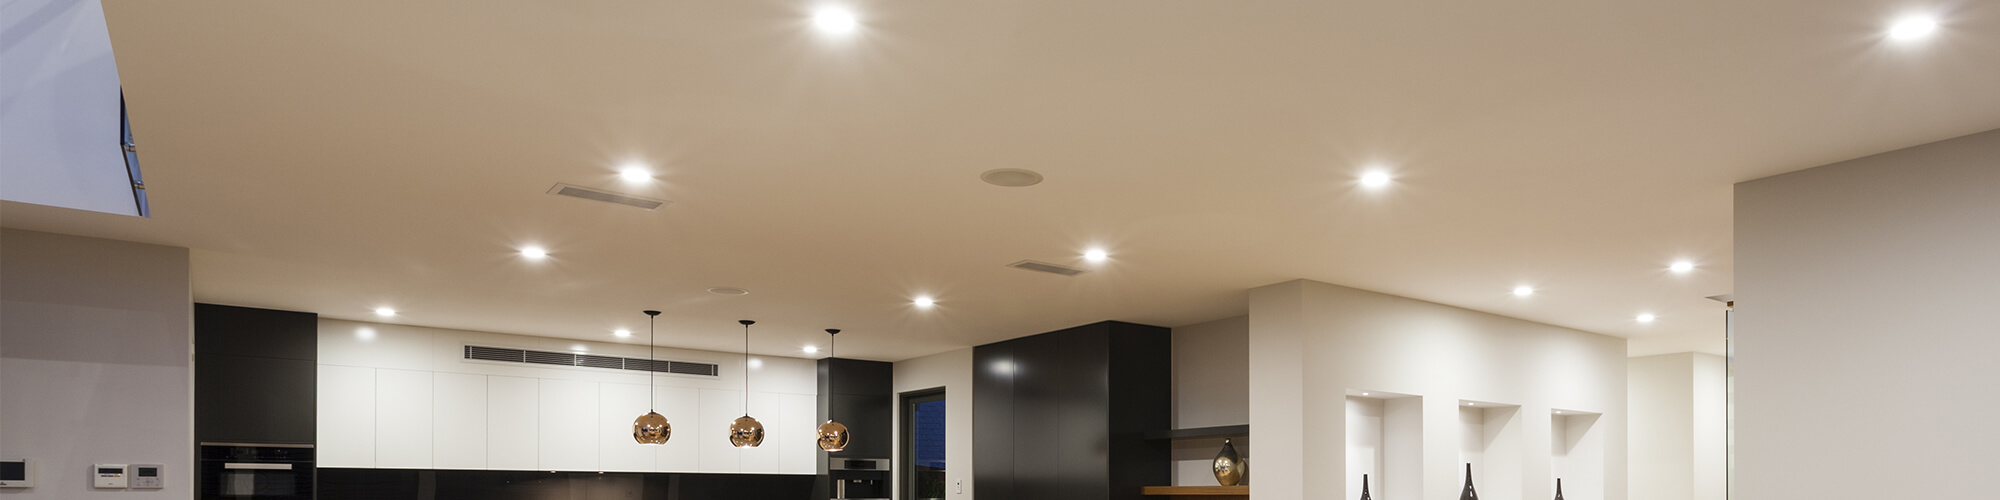 Recessed Lighting The Home Depot